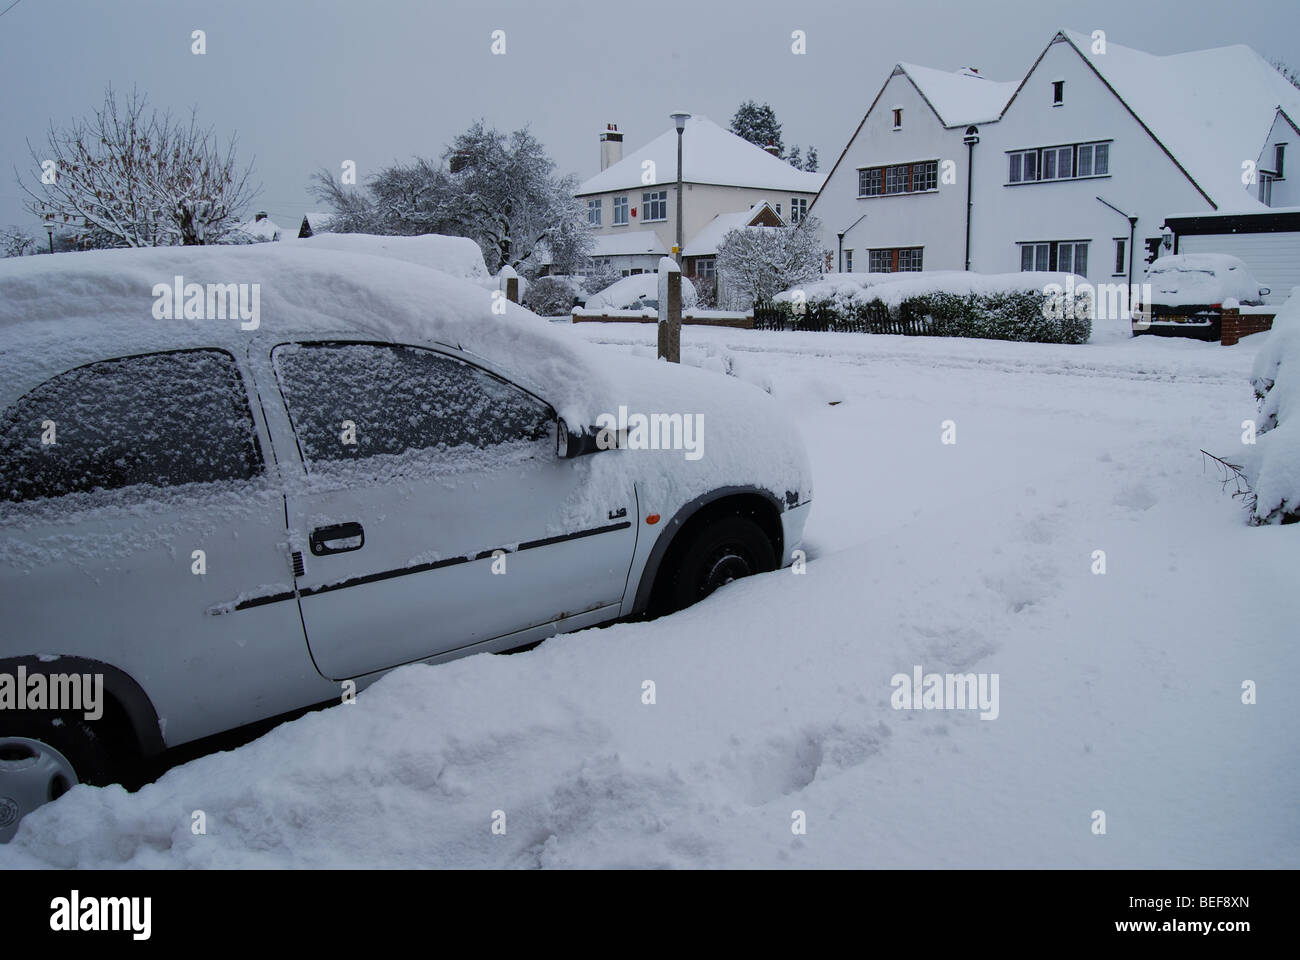 Snow in the United Kingdom 10 inches high - Stock Image